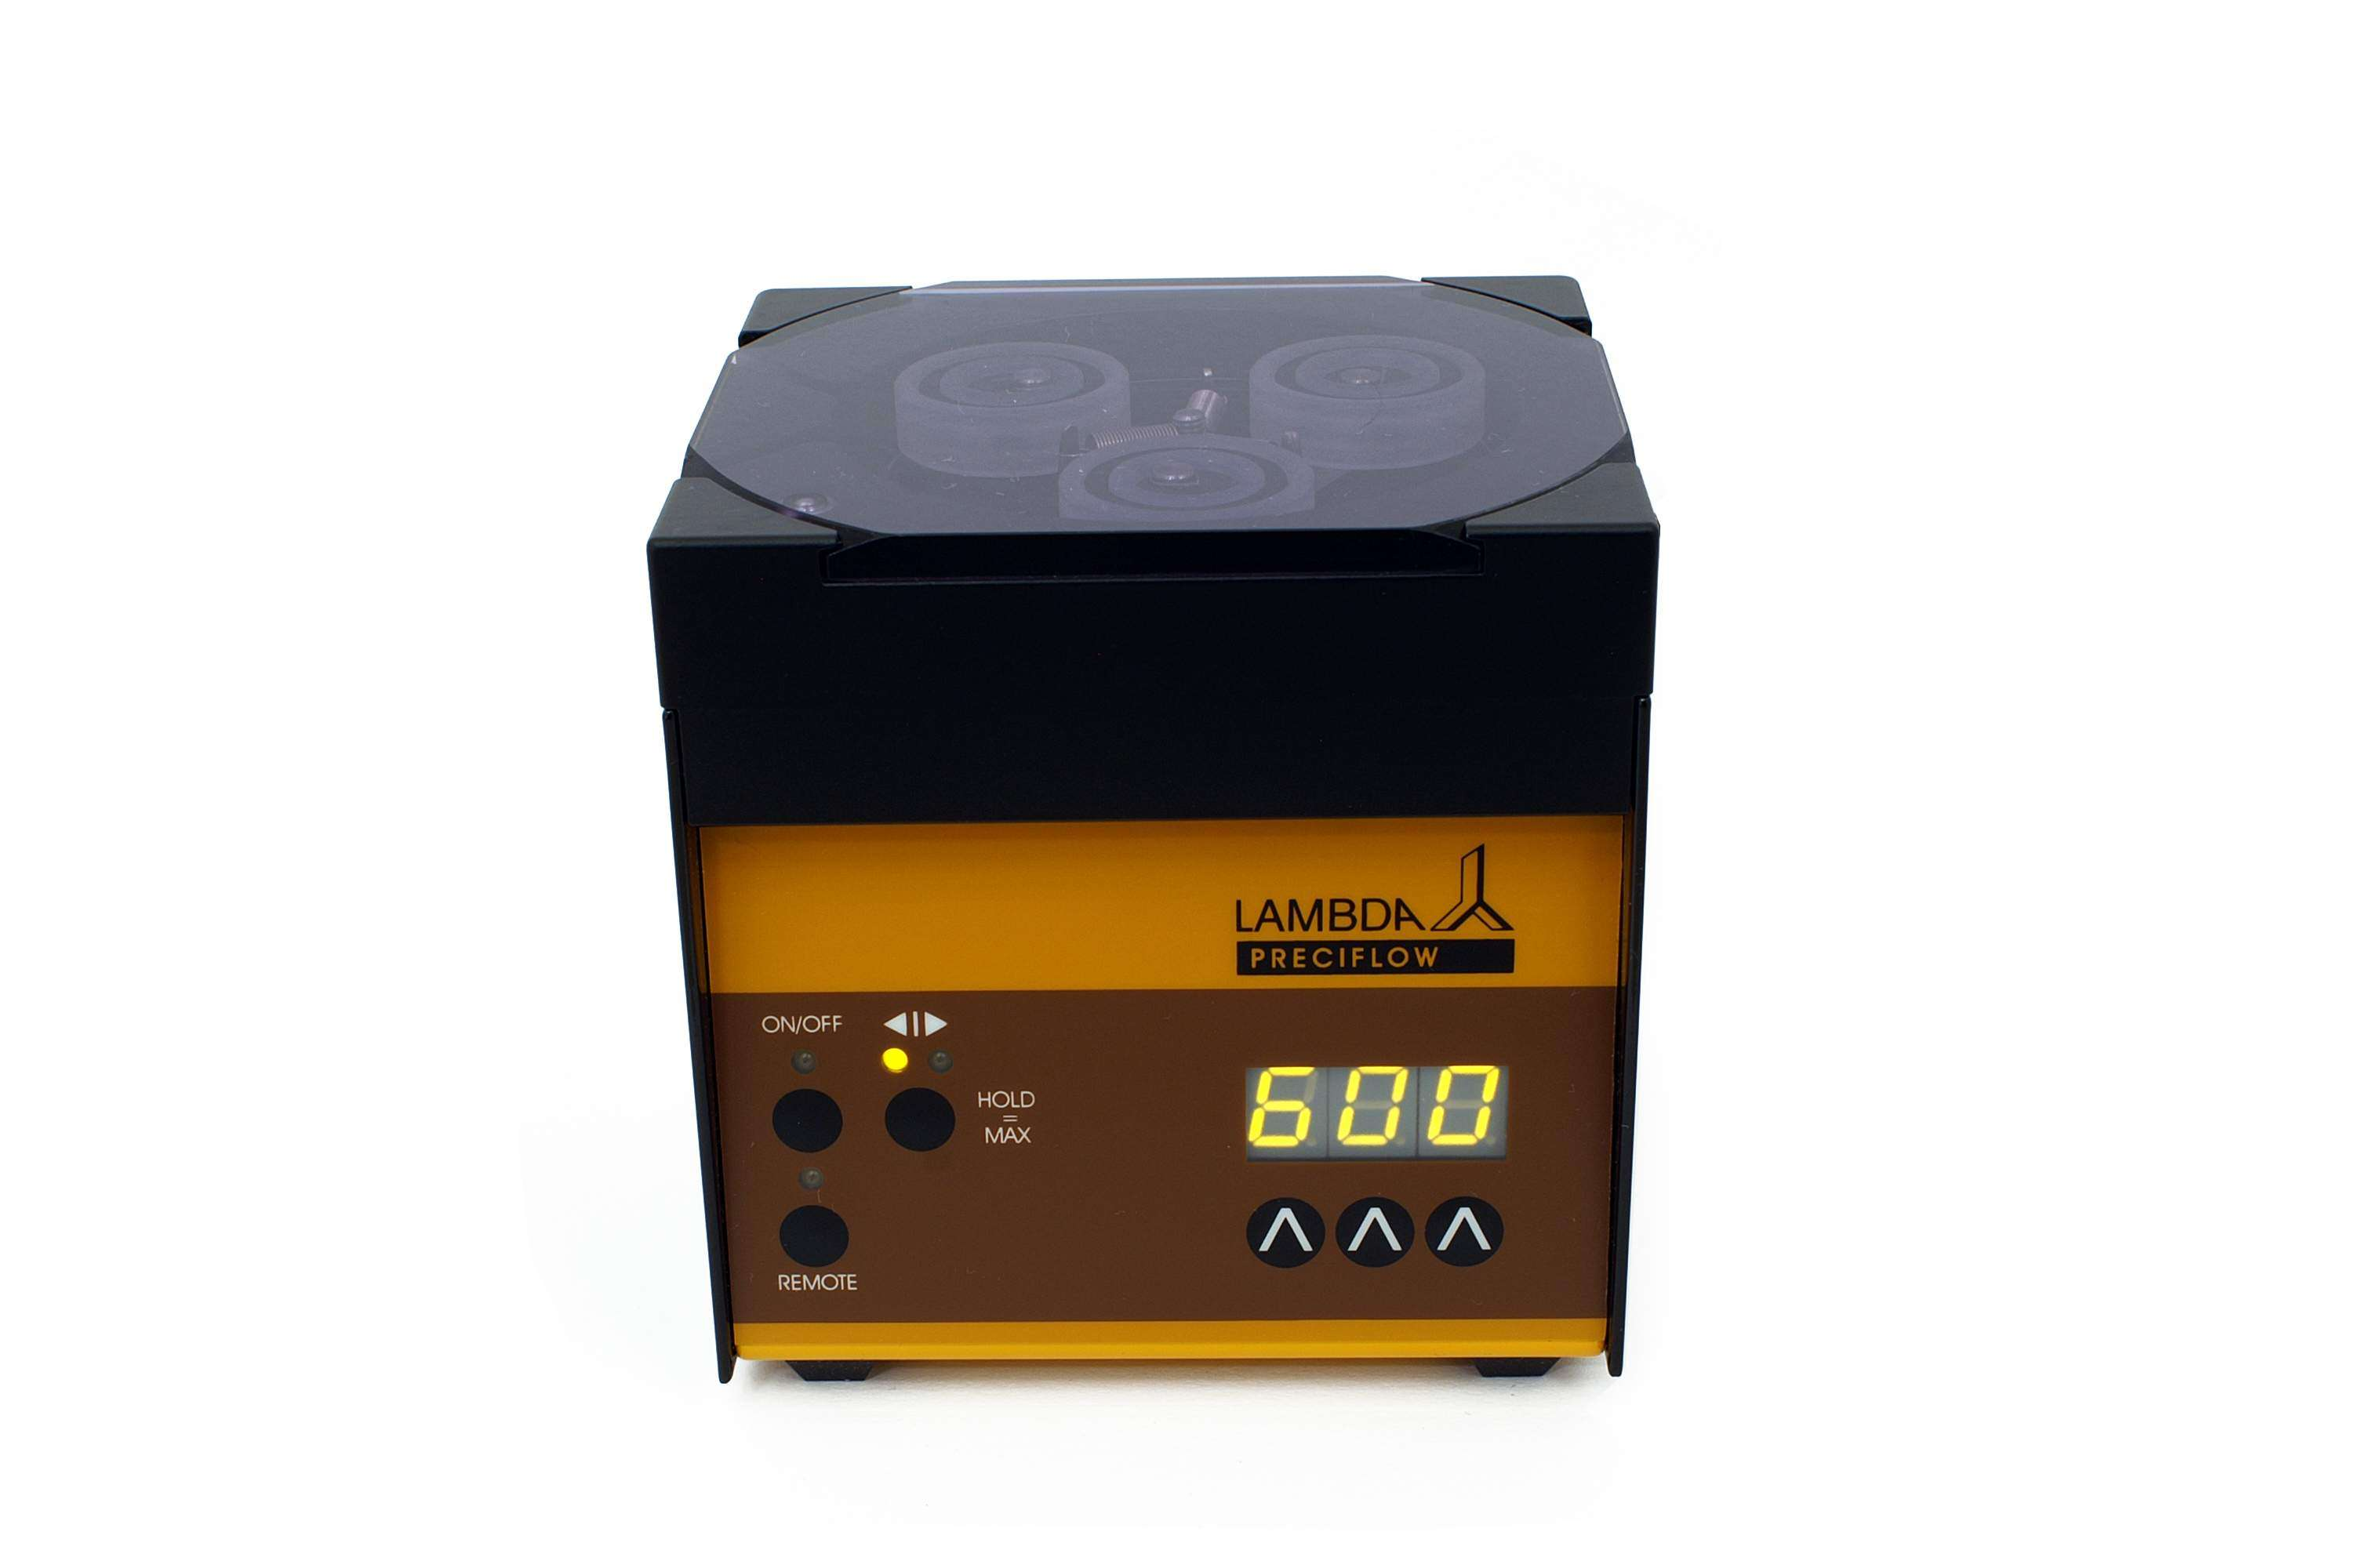 Buy PRECIFLOW peristaltic pump